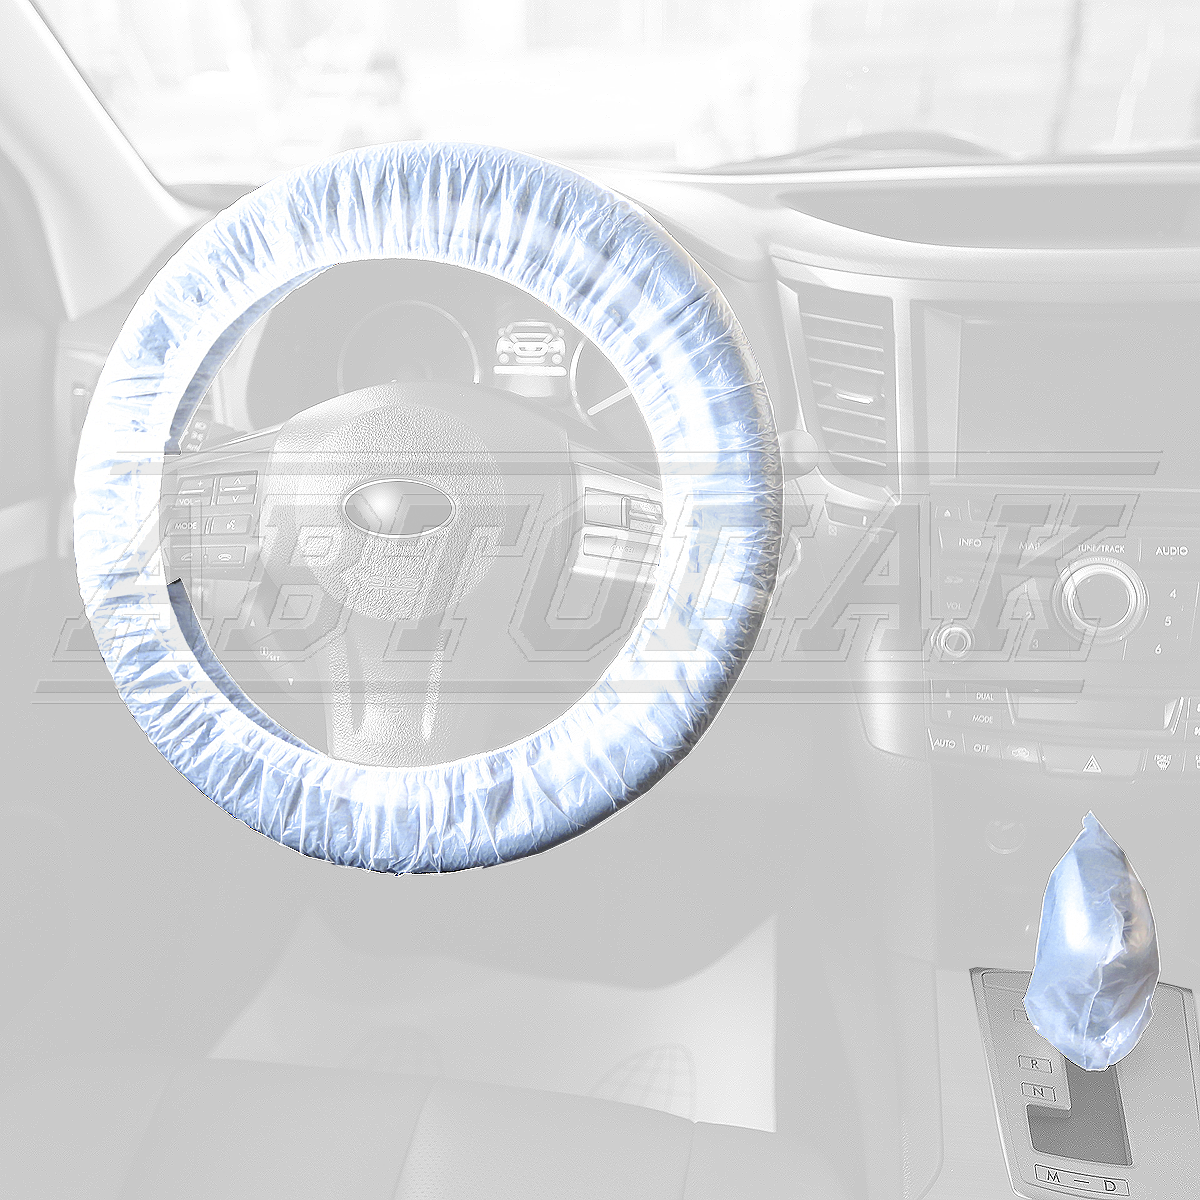 Covers for the steering wheel with the rubber bandi